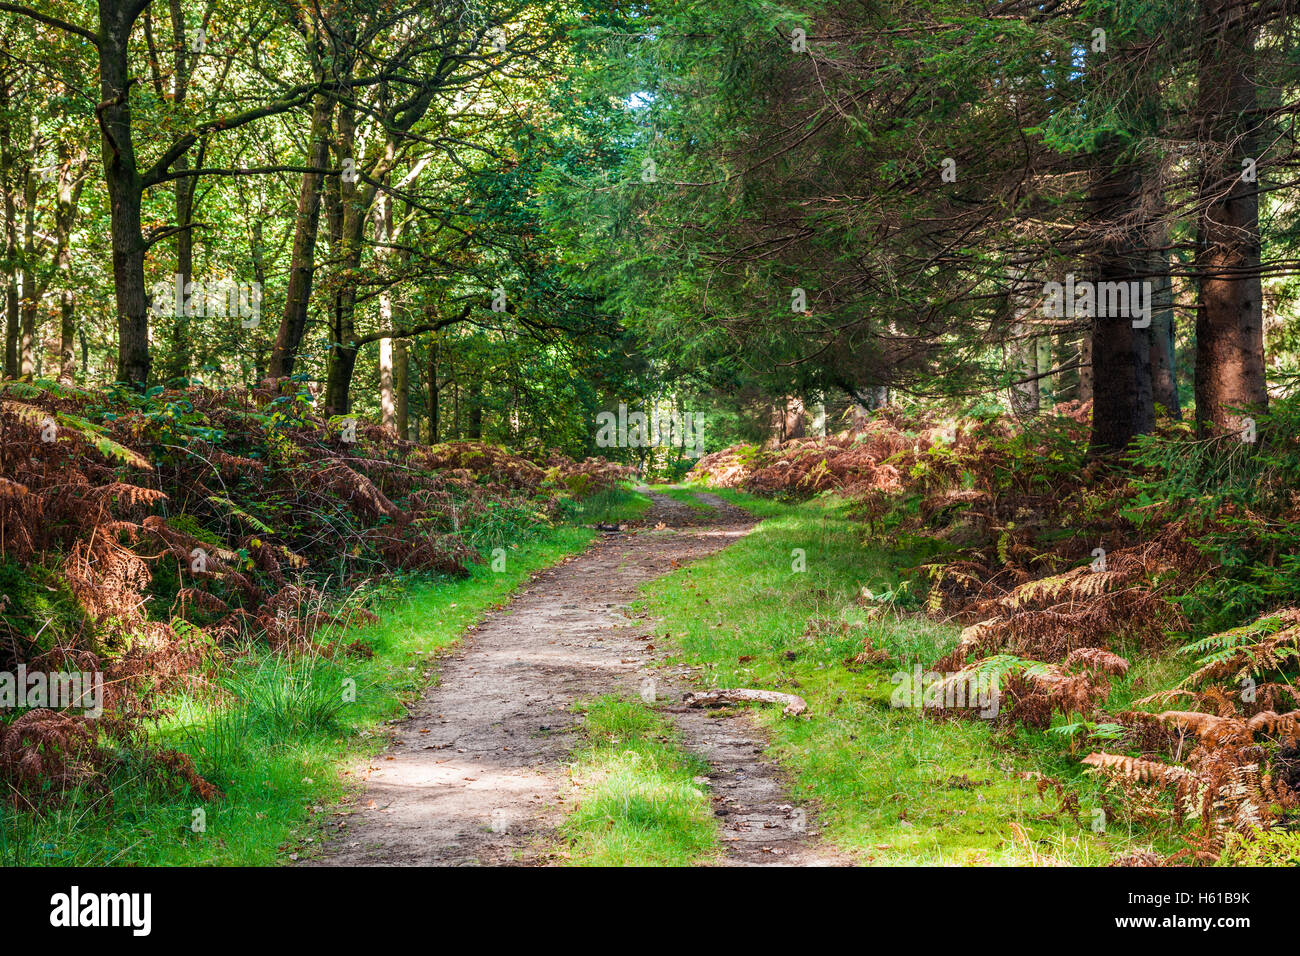 Woodland path through the Forest of Dean, Gloucestershire. - Stock Image